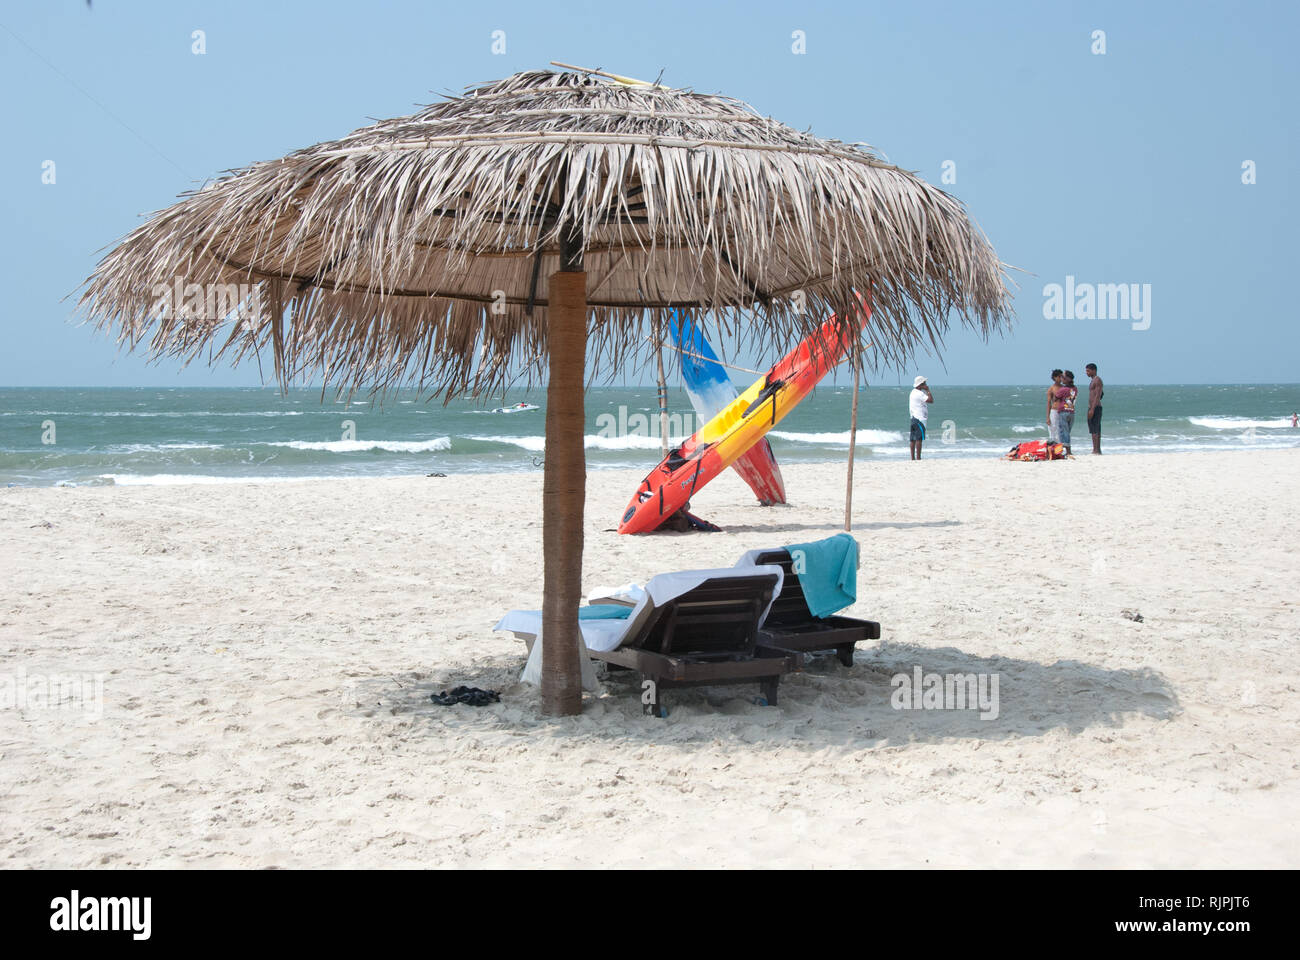 Sandy South Goa Beaches High Resolution Stock Photography And Images Alamy